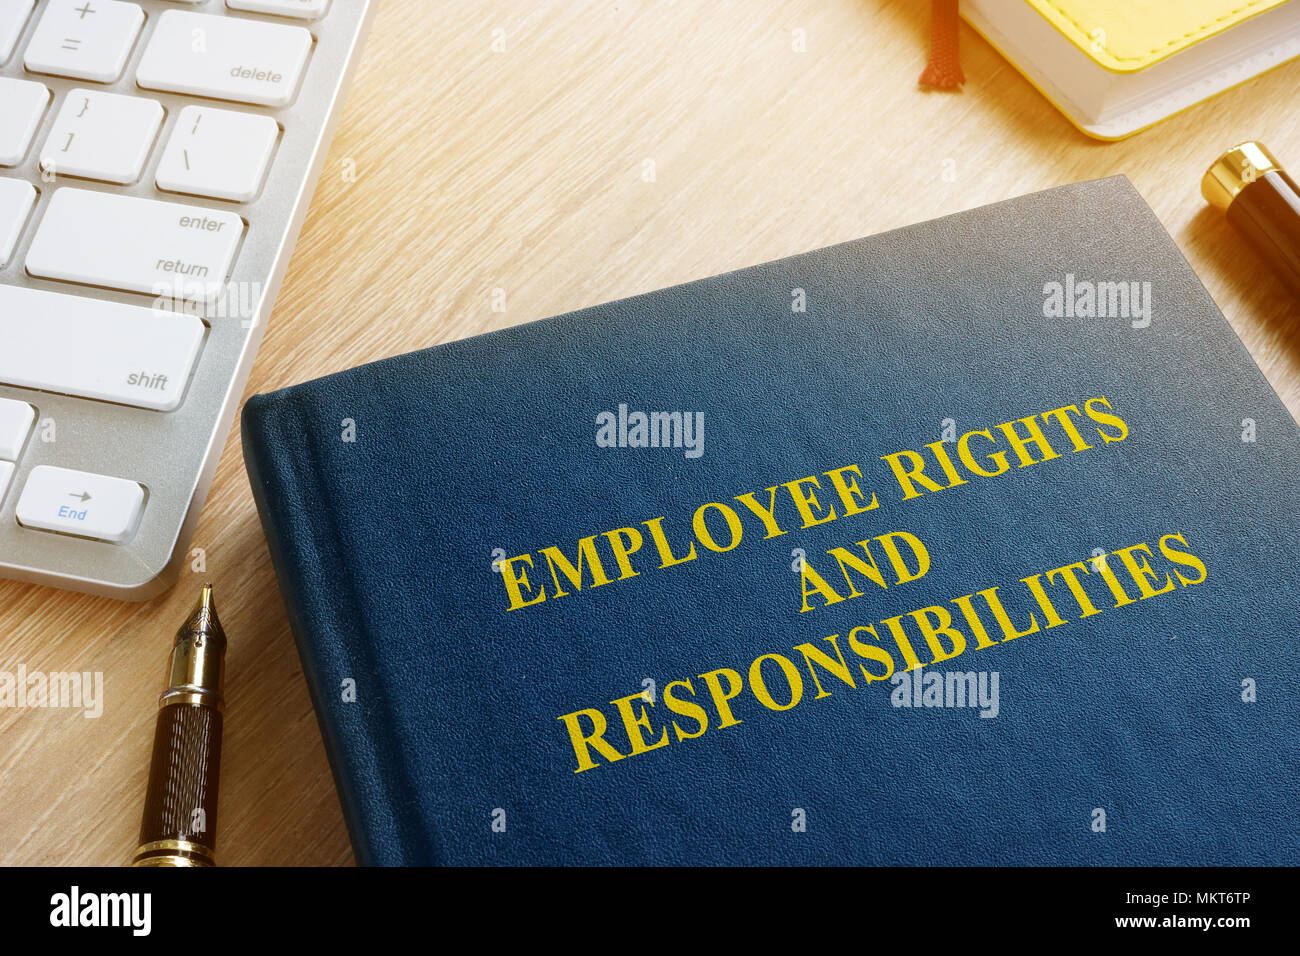 Book with title Employee rights and responsibilities. - Stock Image